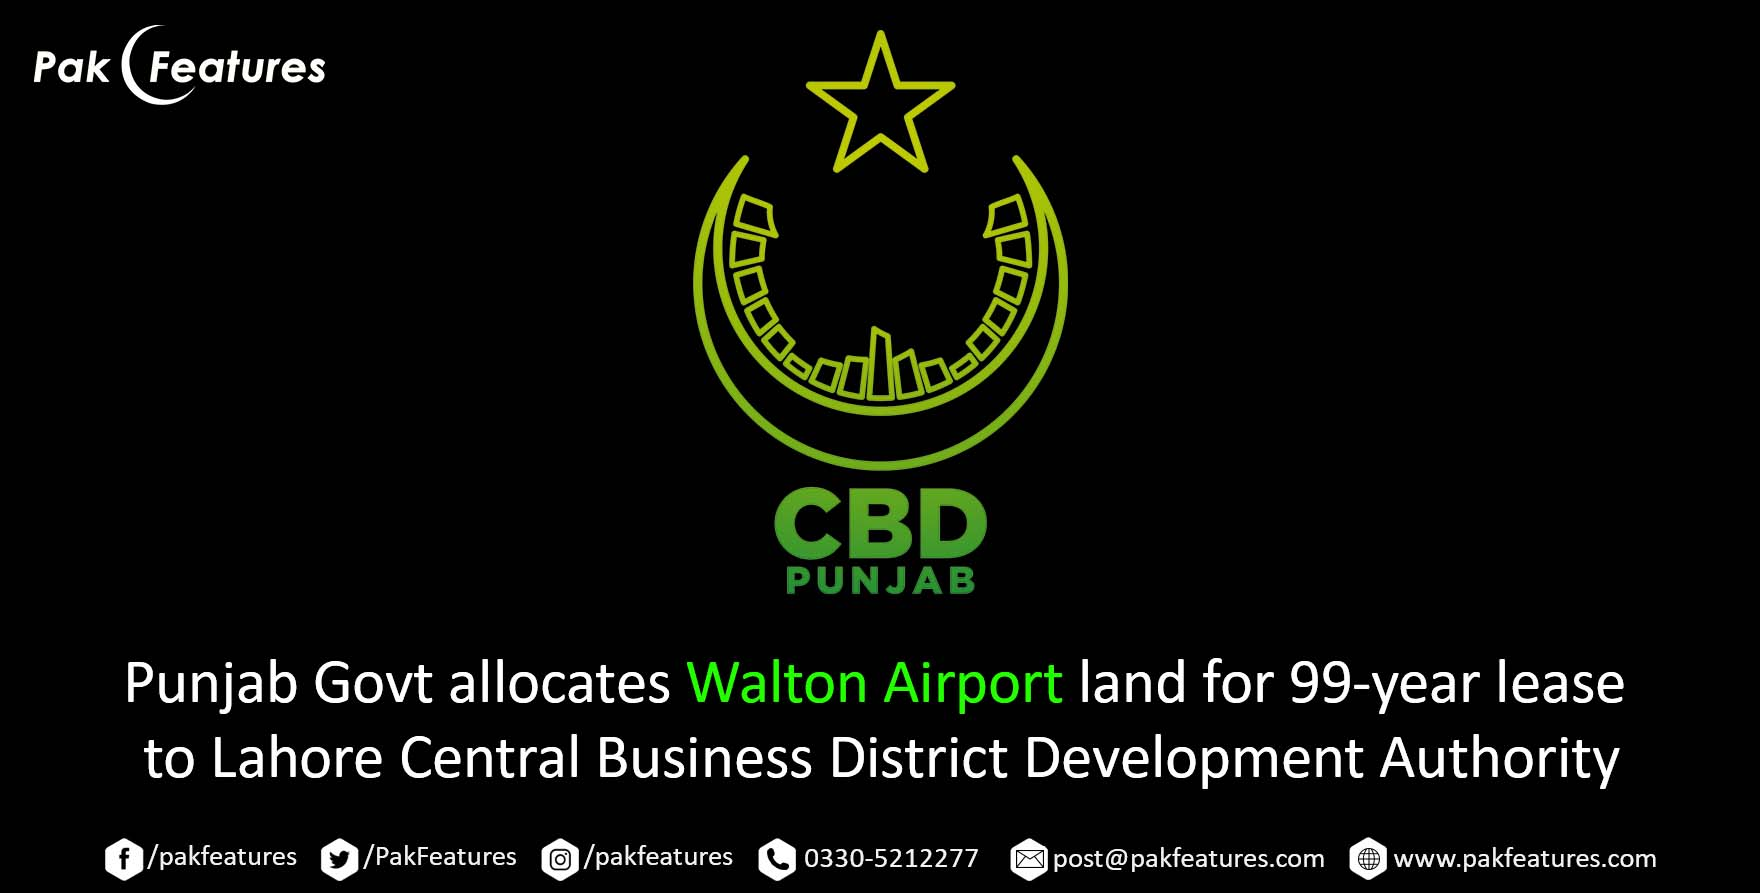 Punjab Govt allocates Walton Airport land for 99-year lease to Lahore Central Business District Development Authority